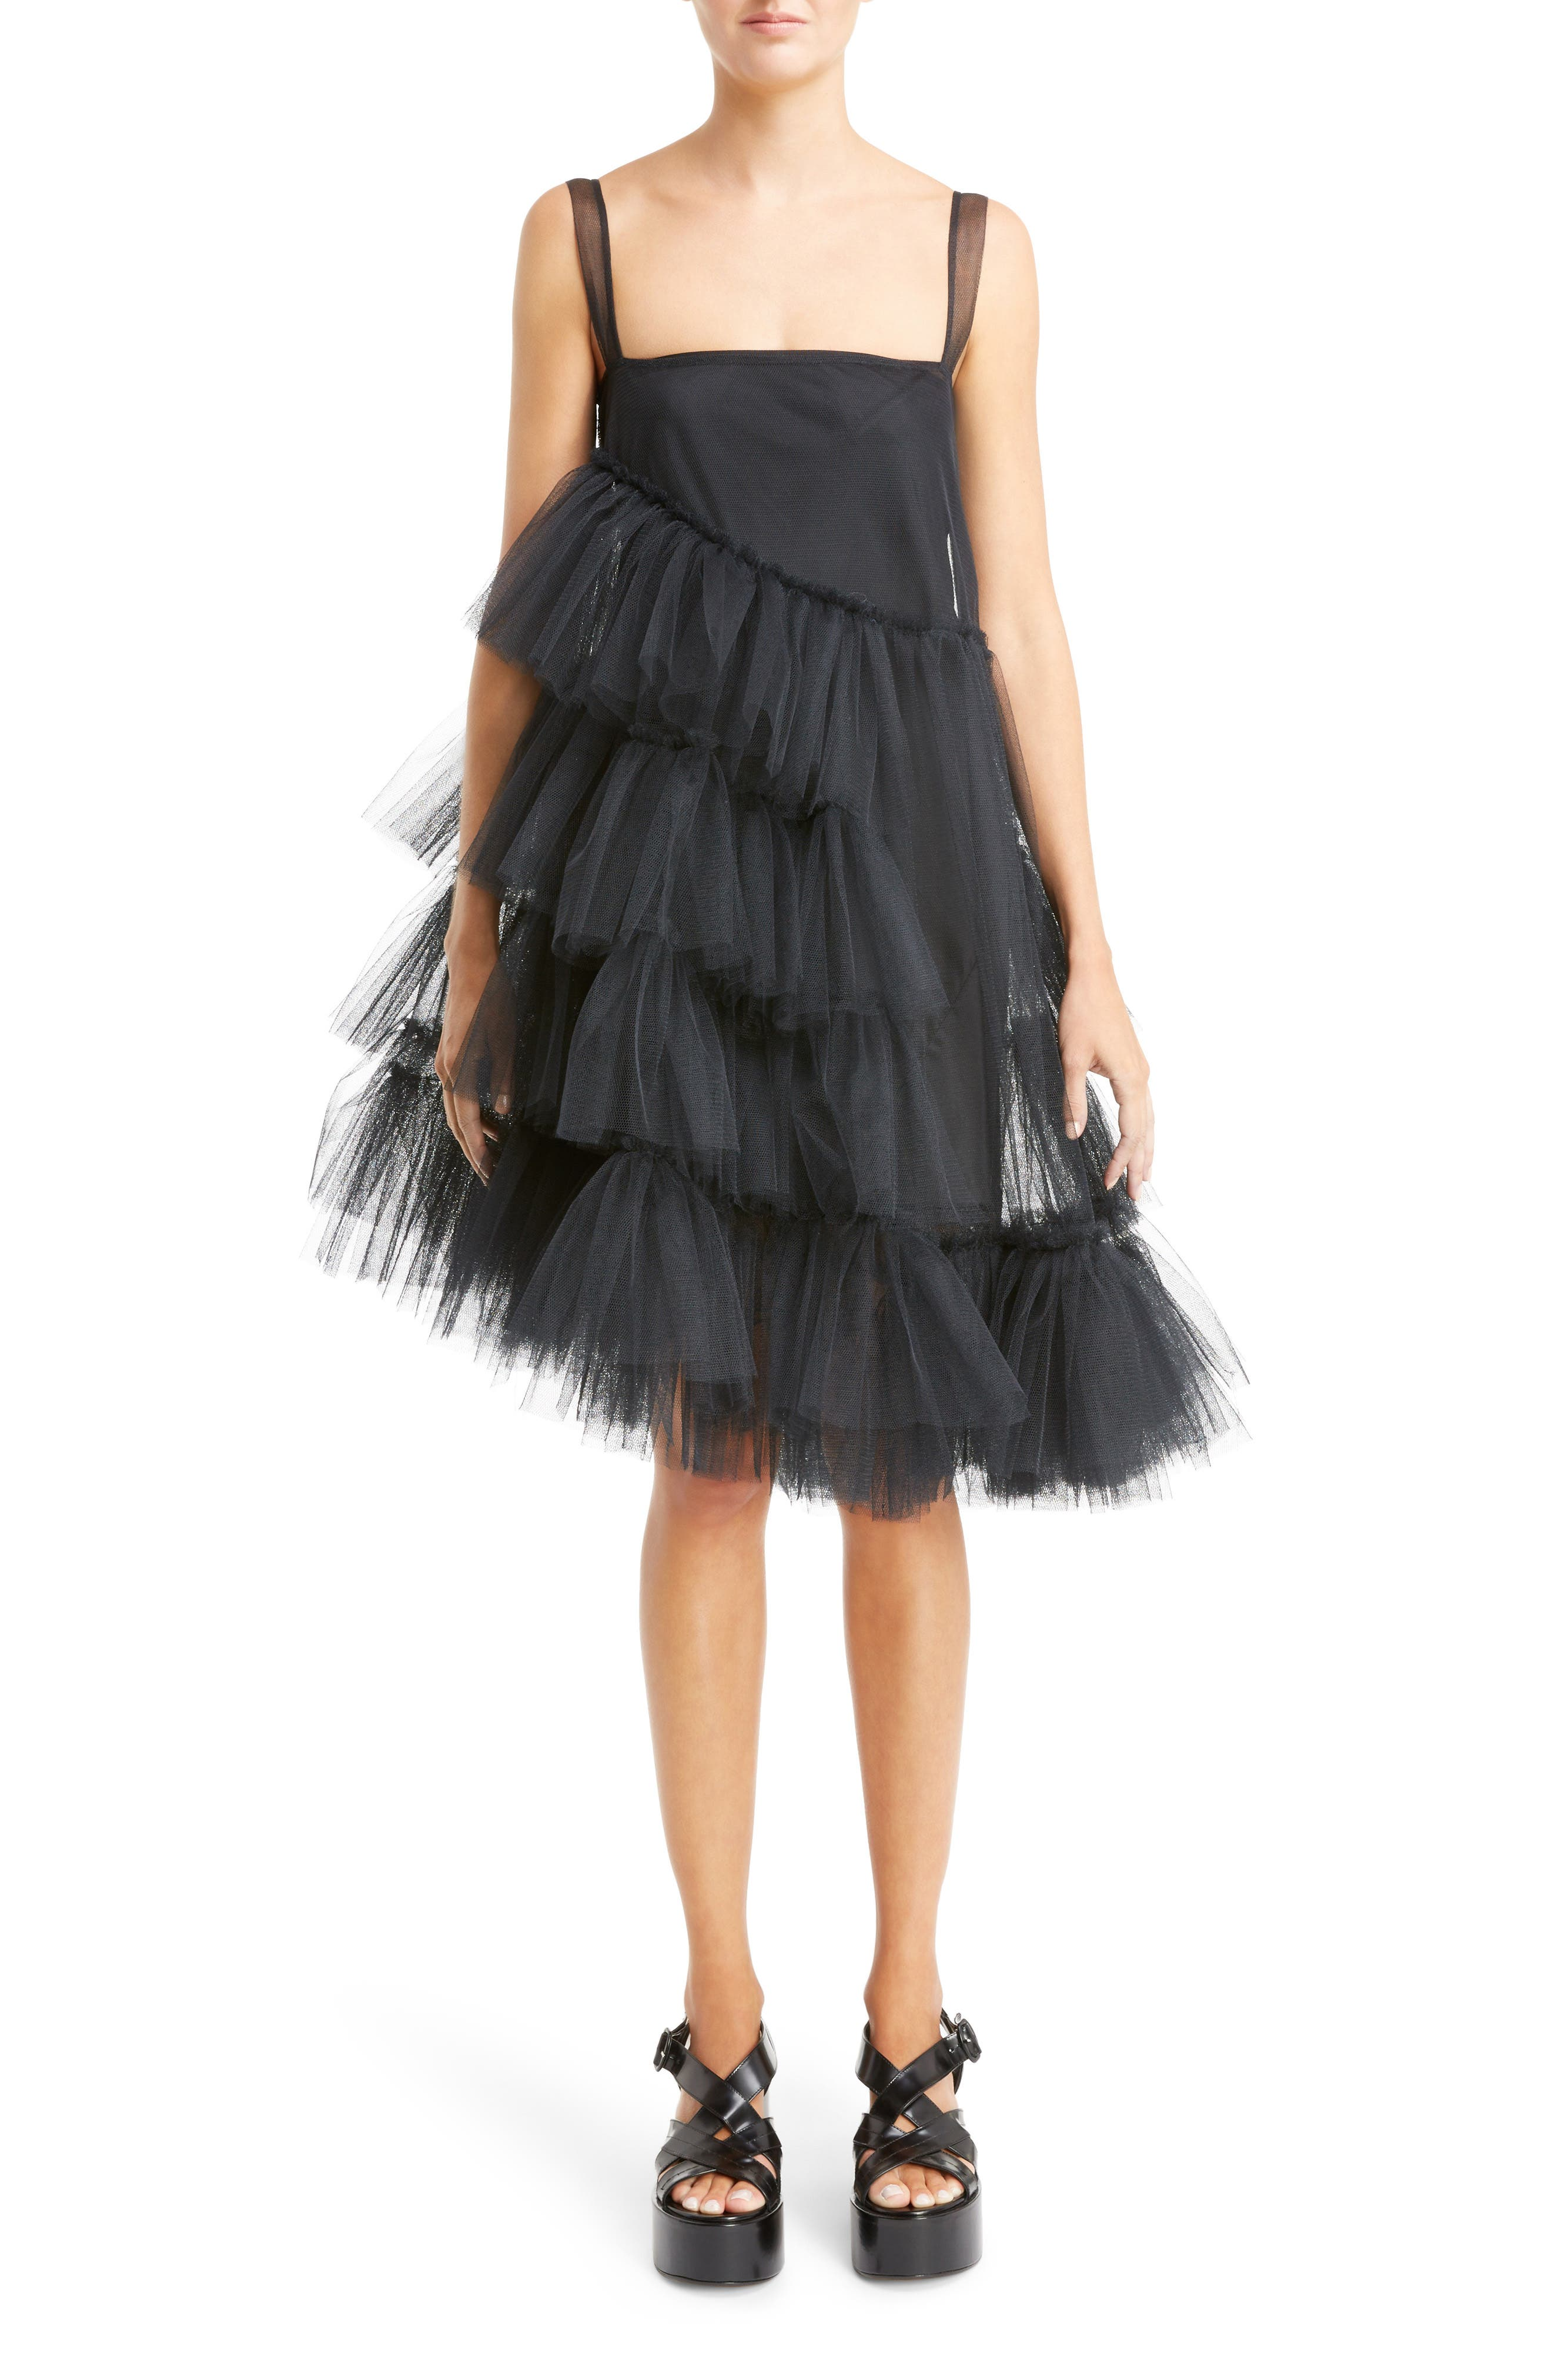 Turbo Tiered Tulle Dress,                             Main thumbnail 1, color,                             Black